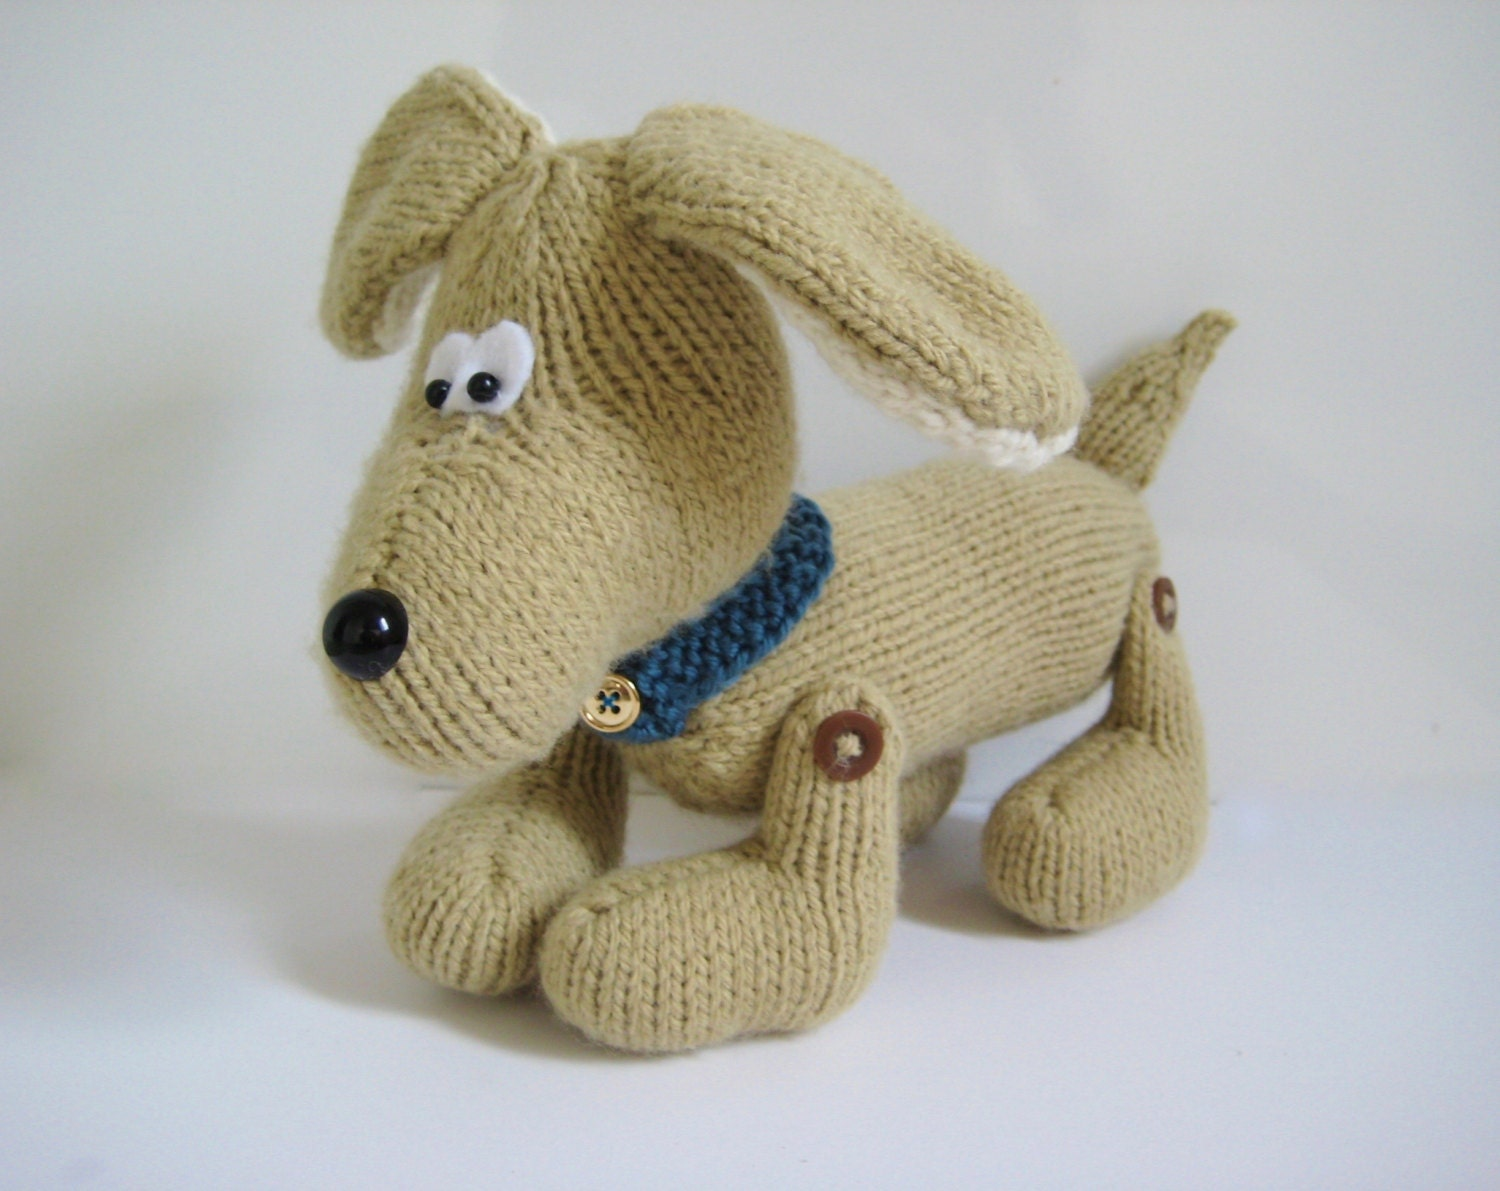 Knitting Patterns For Dogs Toys : Biscuit the Dog toy knitting pattern